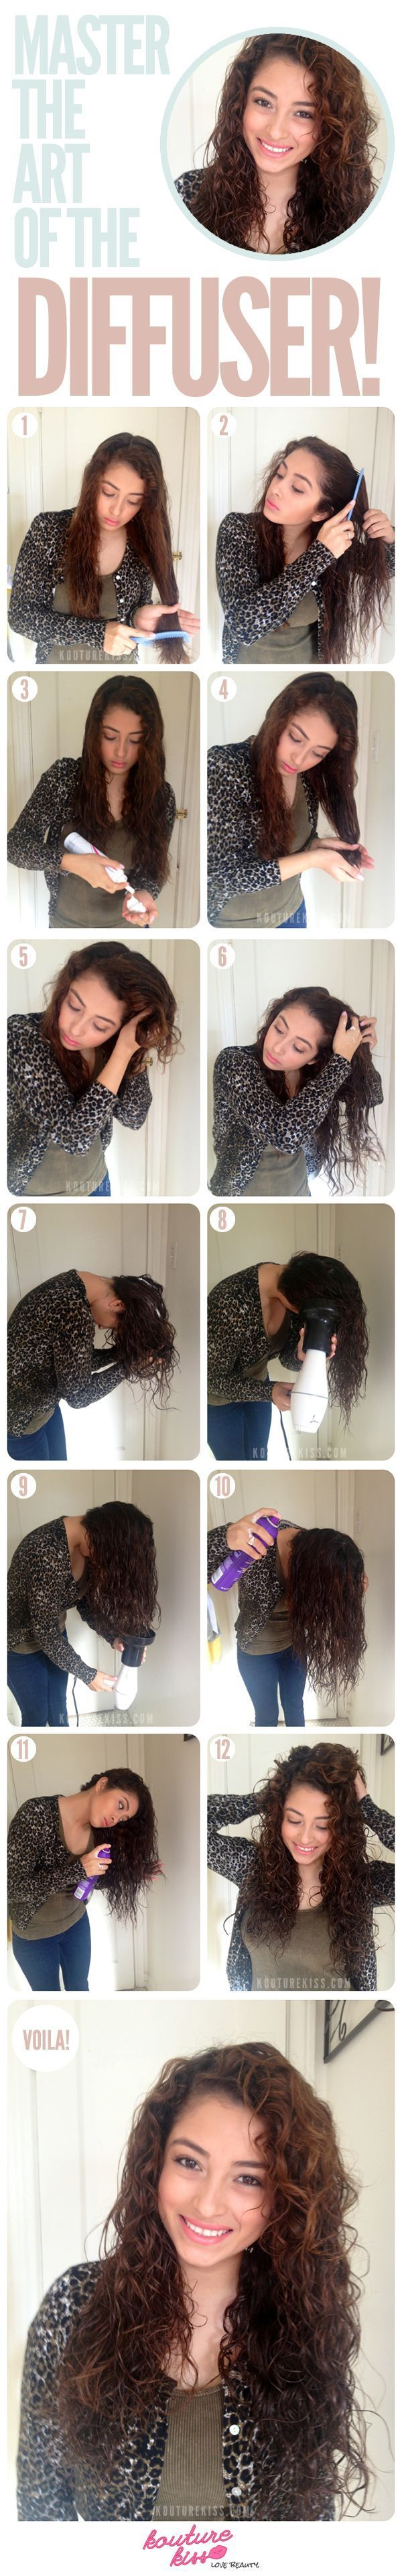 How it use a diffuser